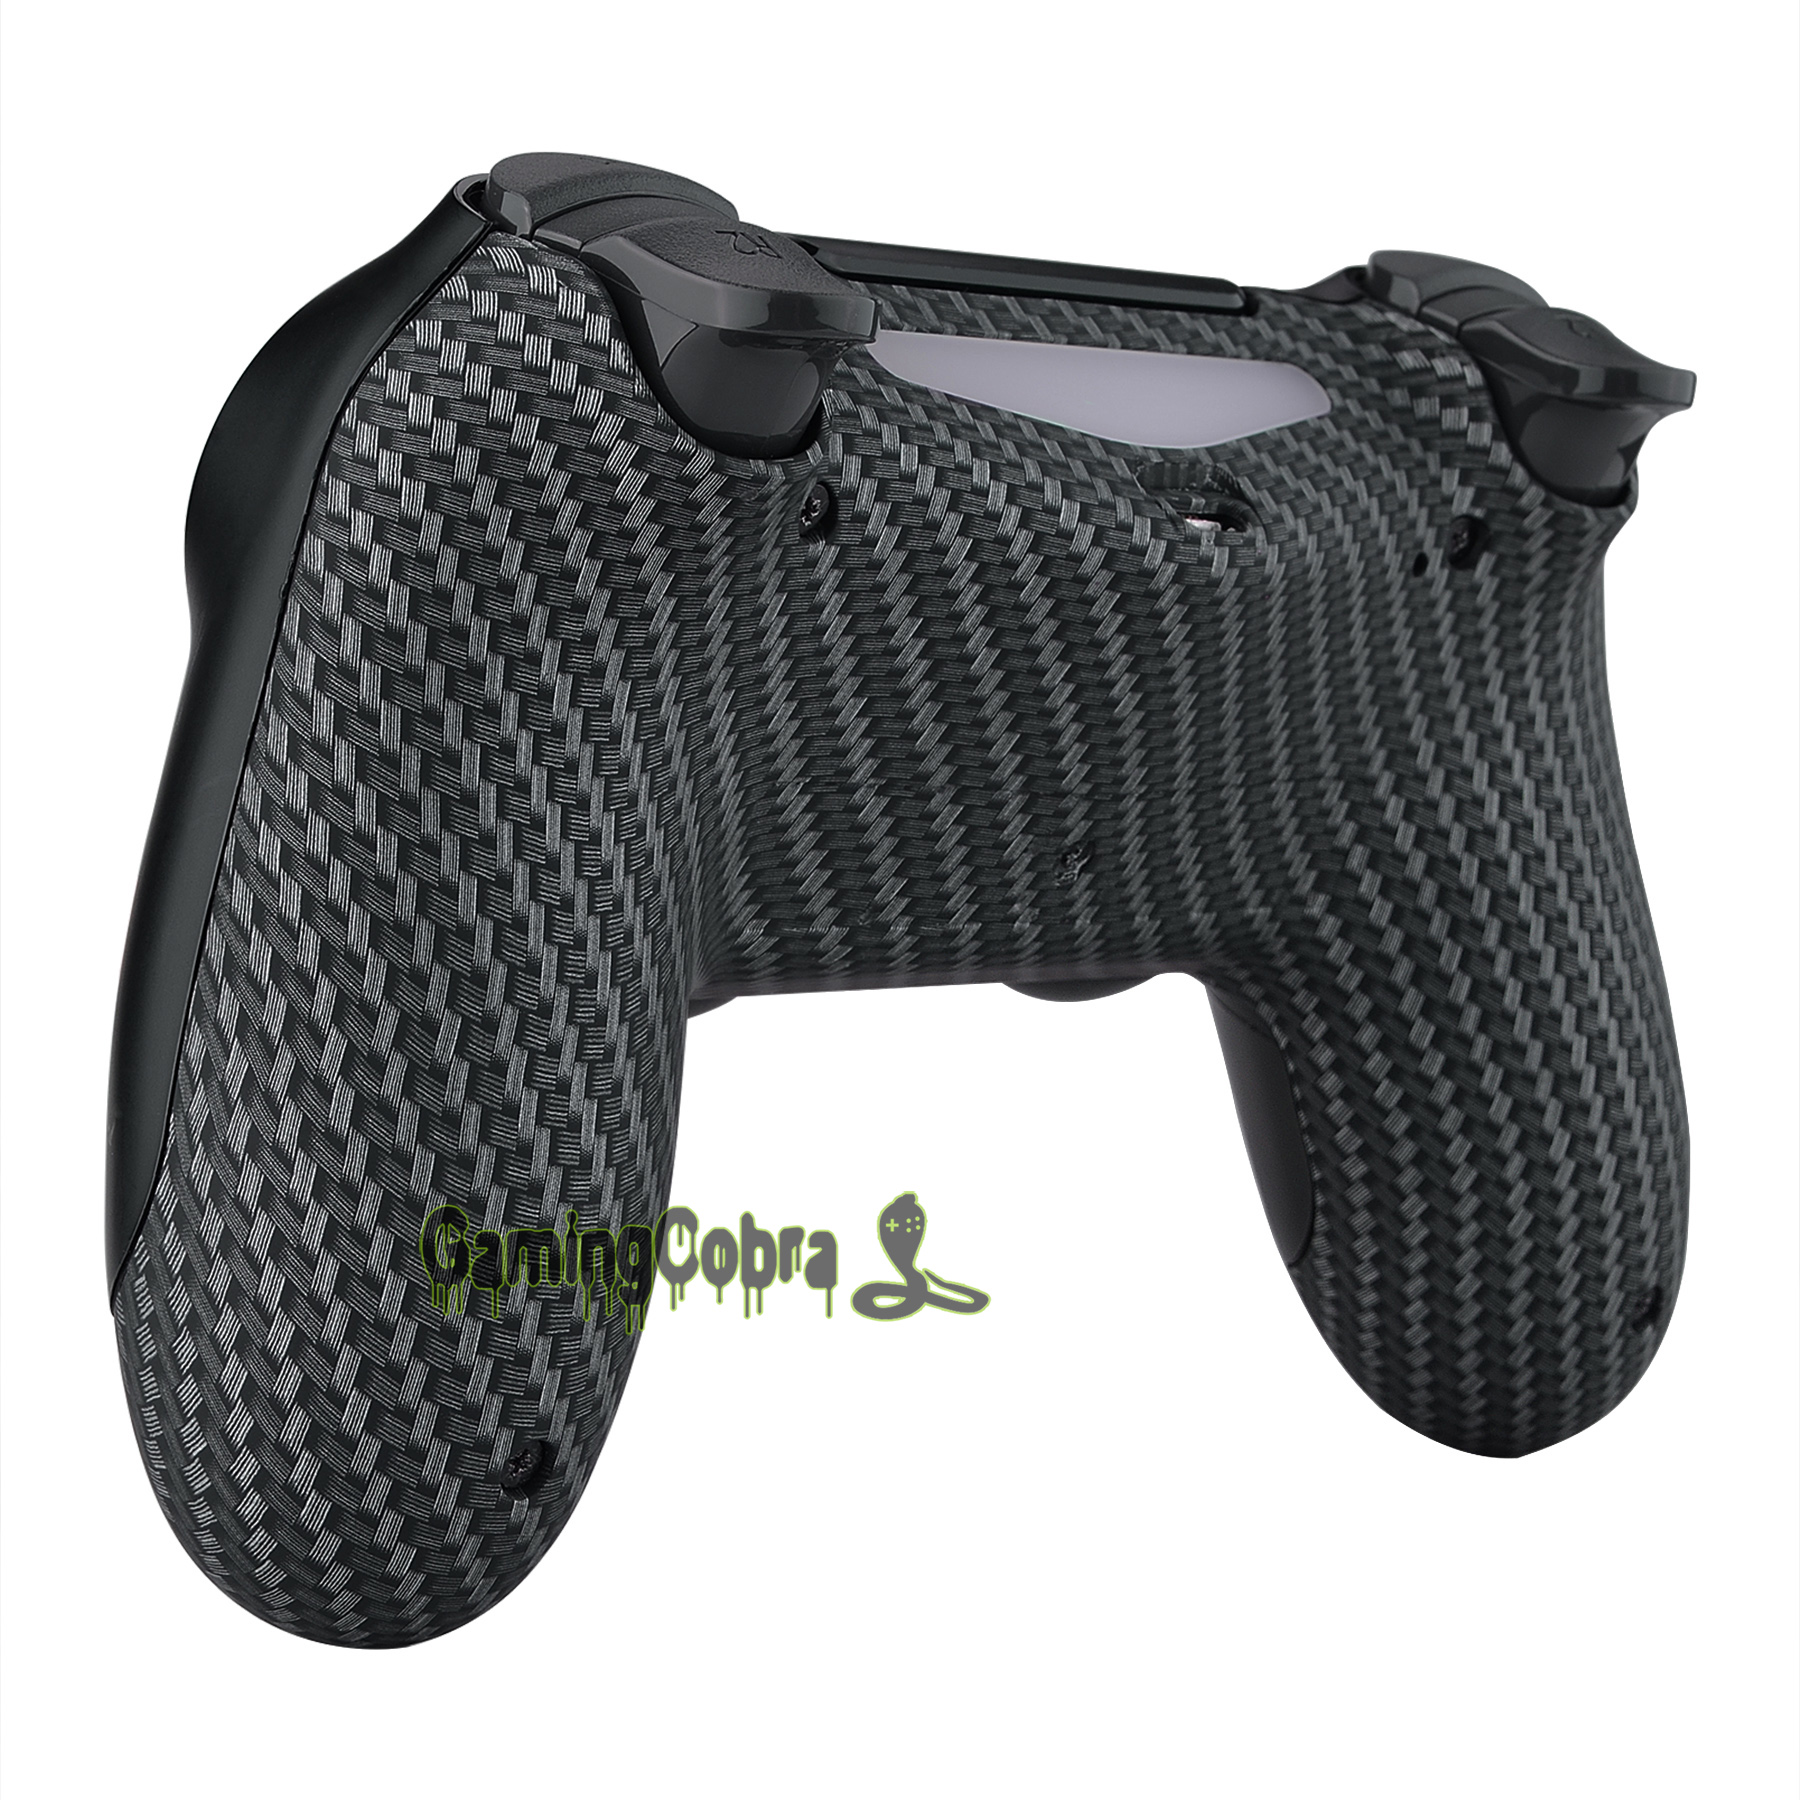 Black Silver Carbon Fiber Soft Touch Bottom <font><b>Shell</b></font> Replacement Part for PS4 Slim Pro Controller <font><b>JDM</b></font>-040 <font><b>JDM</b></font>-050 <font><b>JDM</b></font>-<font><b>055</b></font> image